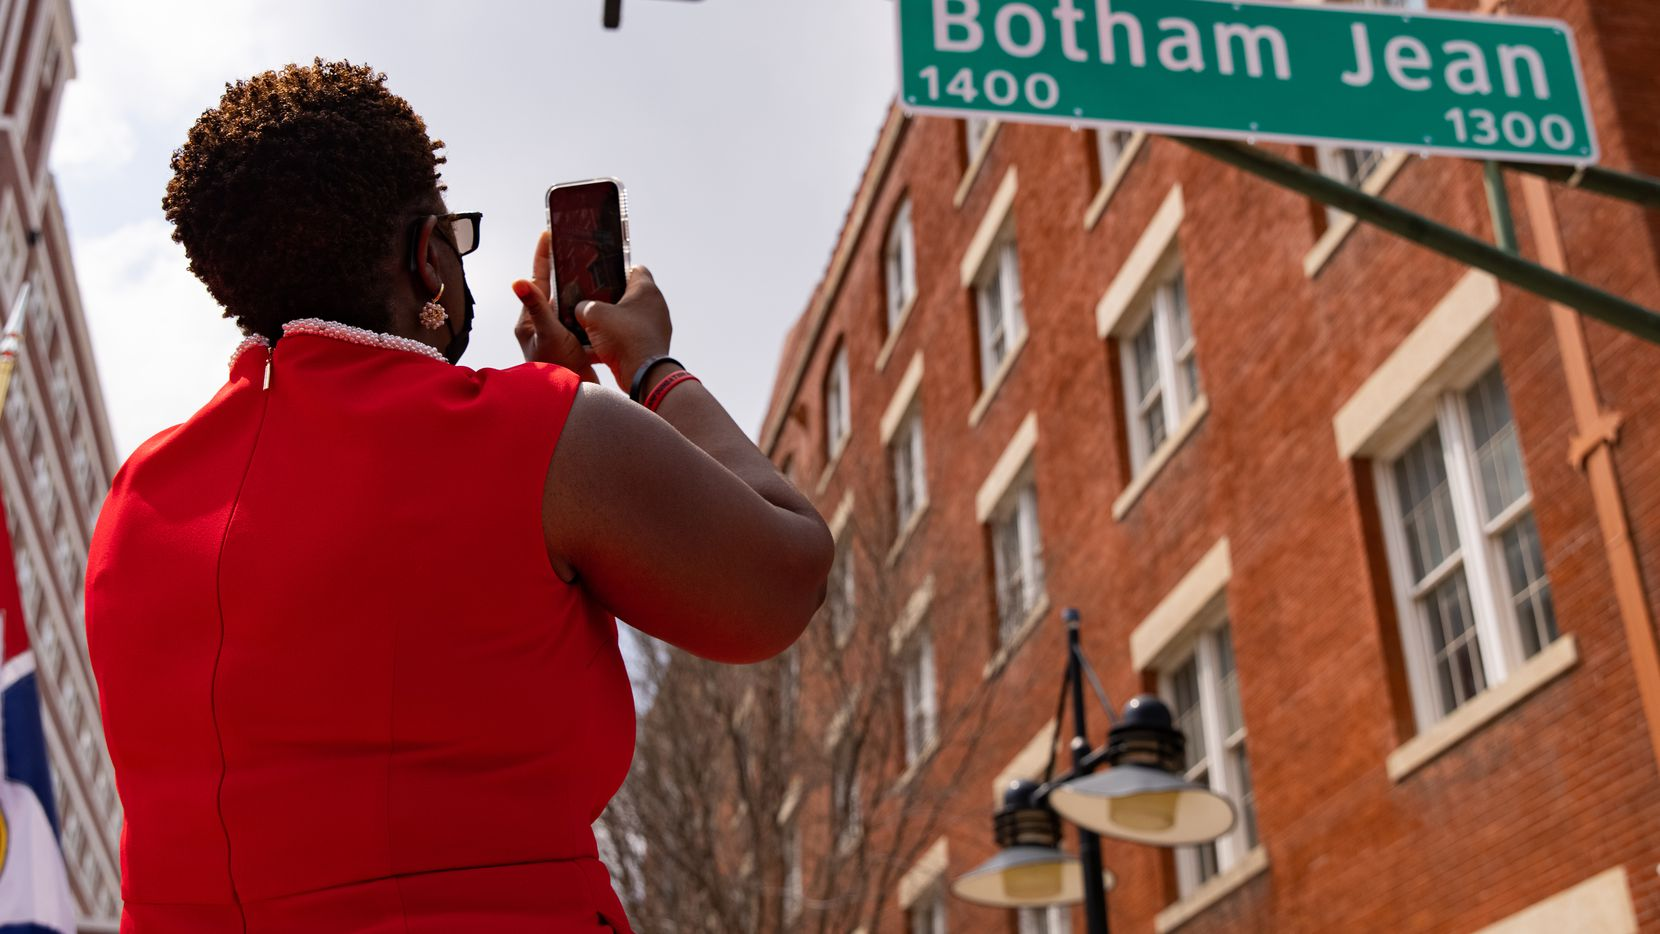 Botham Jean's mother, Allison Jean, takes a photo of a sign bearing his name at a ceremony to redub a four-mile stretch of Lamar Street in his honor Saturday, March 27, 2021.